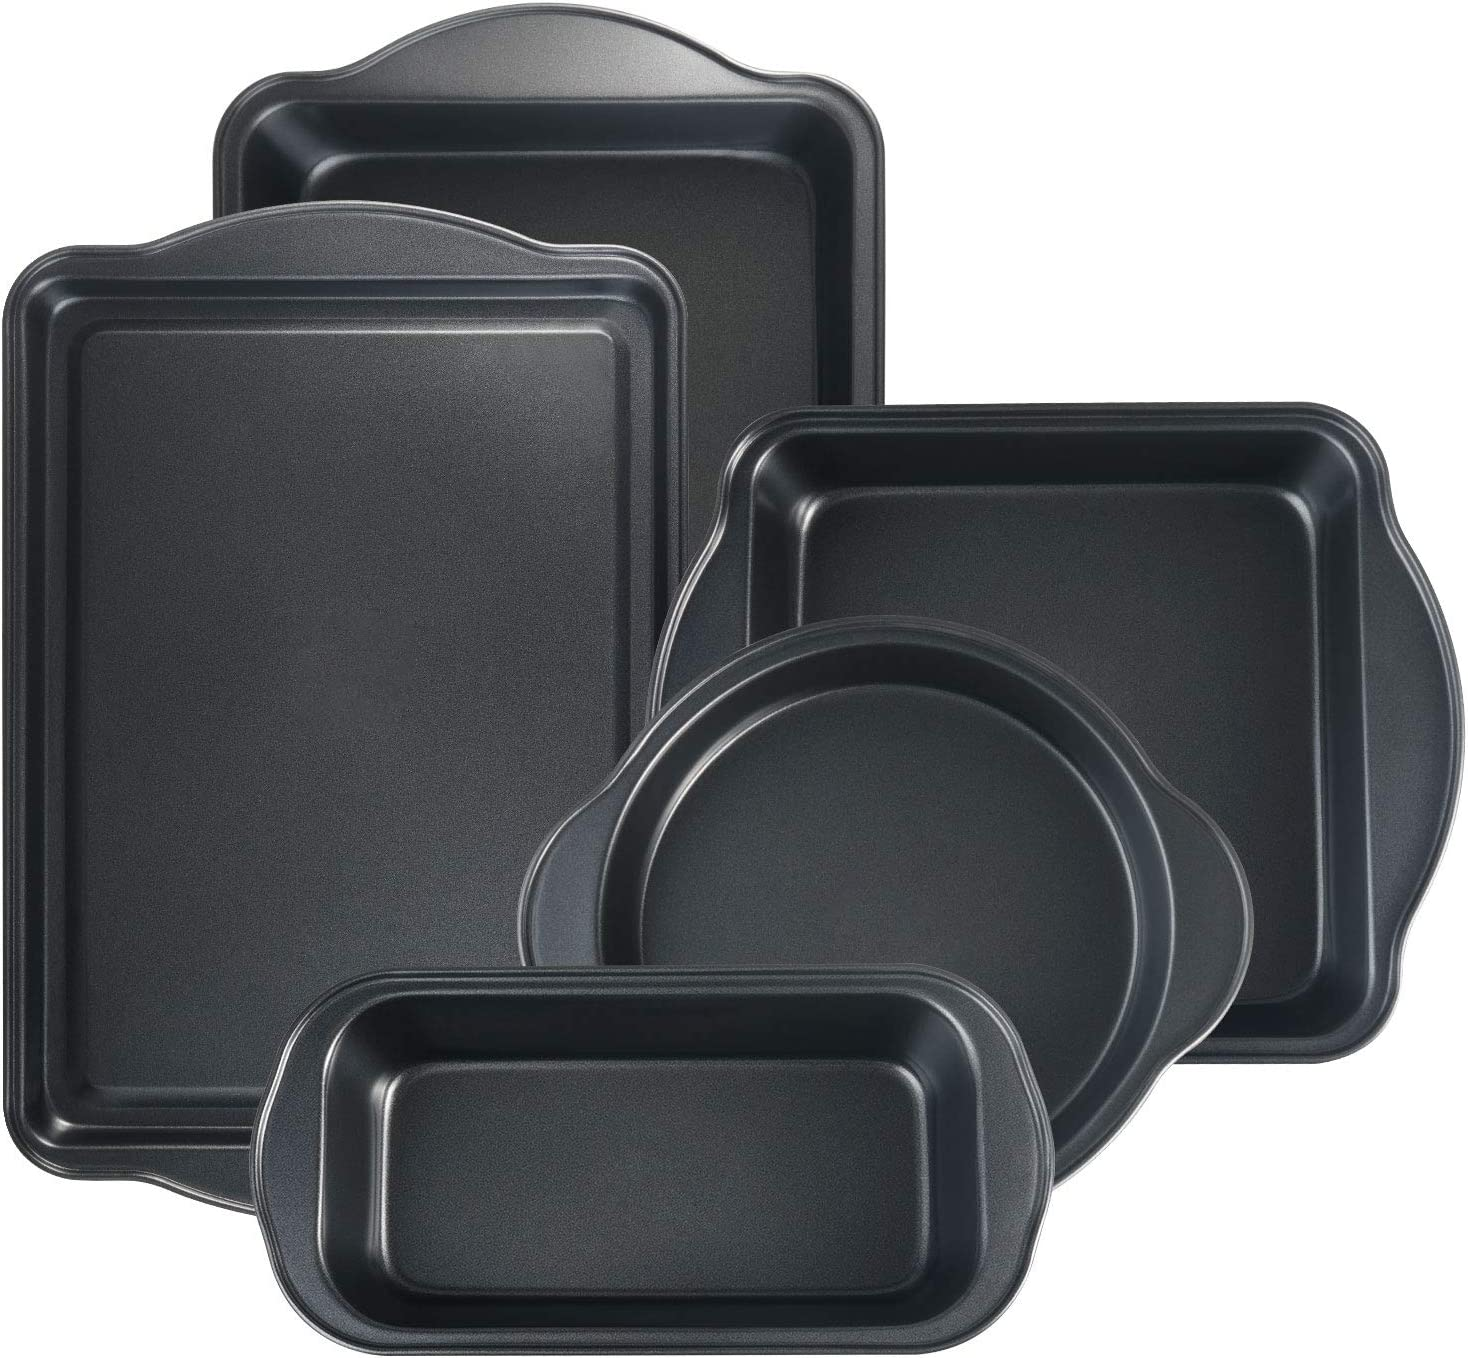 S·KITCHN Bakeware Set with Grips Nonstick Baking Set Including Loaf Pan Pie Pan Roasting Pan Cookie Sheet and Brownie Pan - 5 Piece